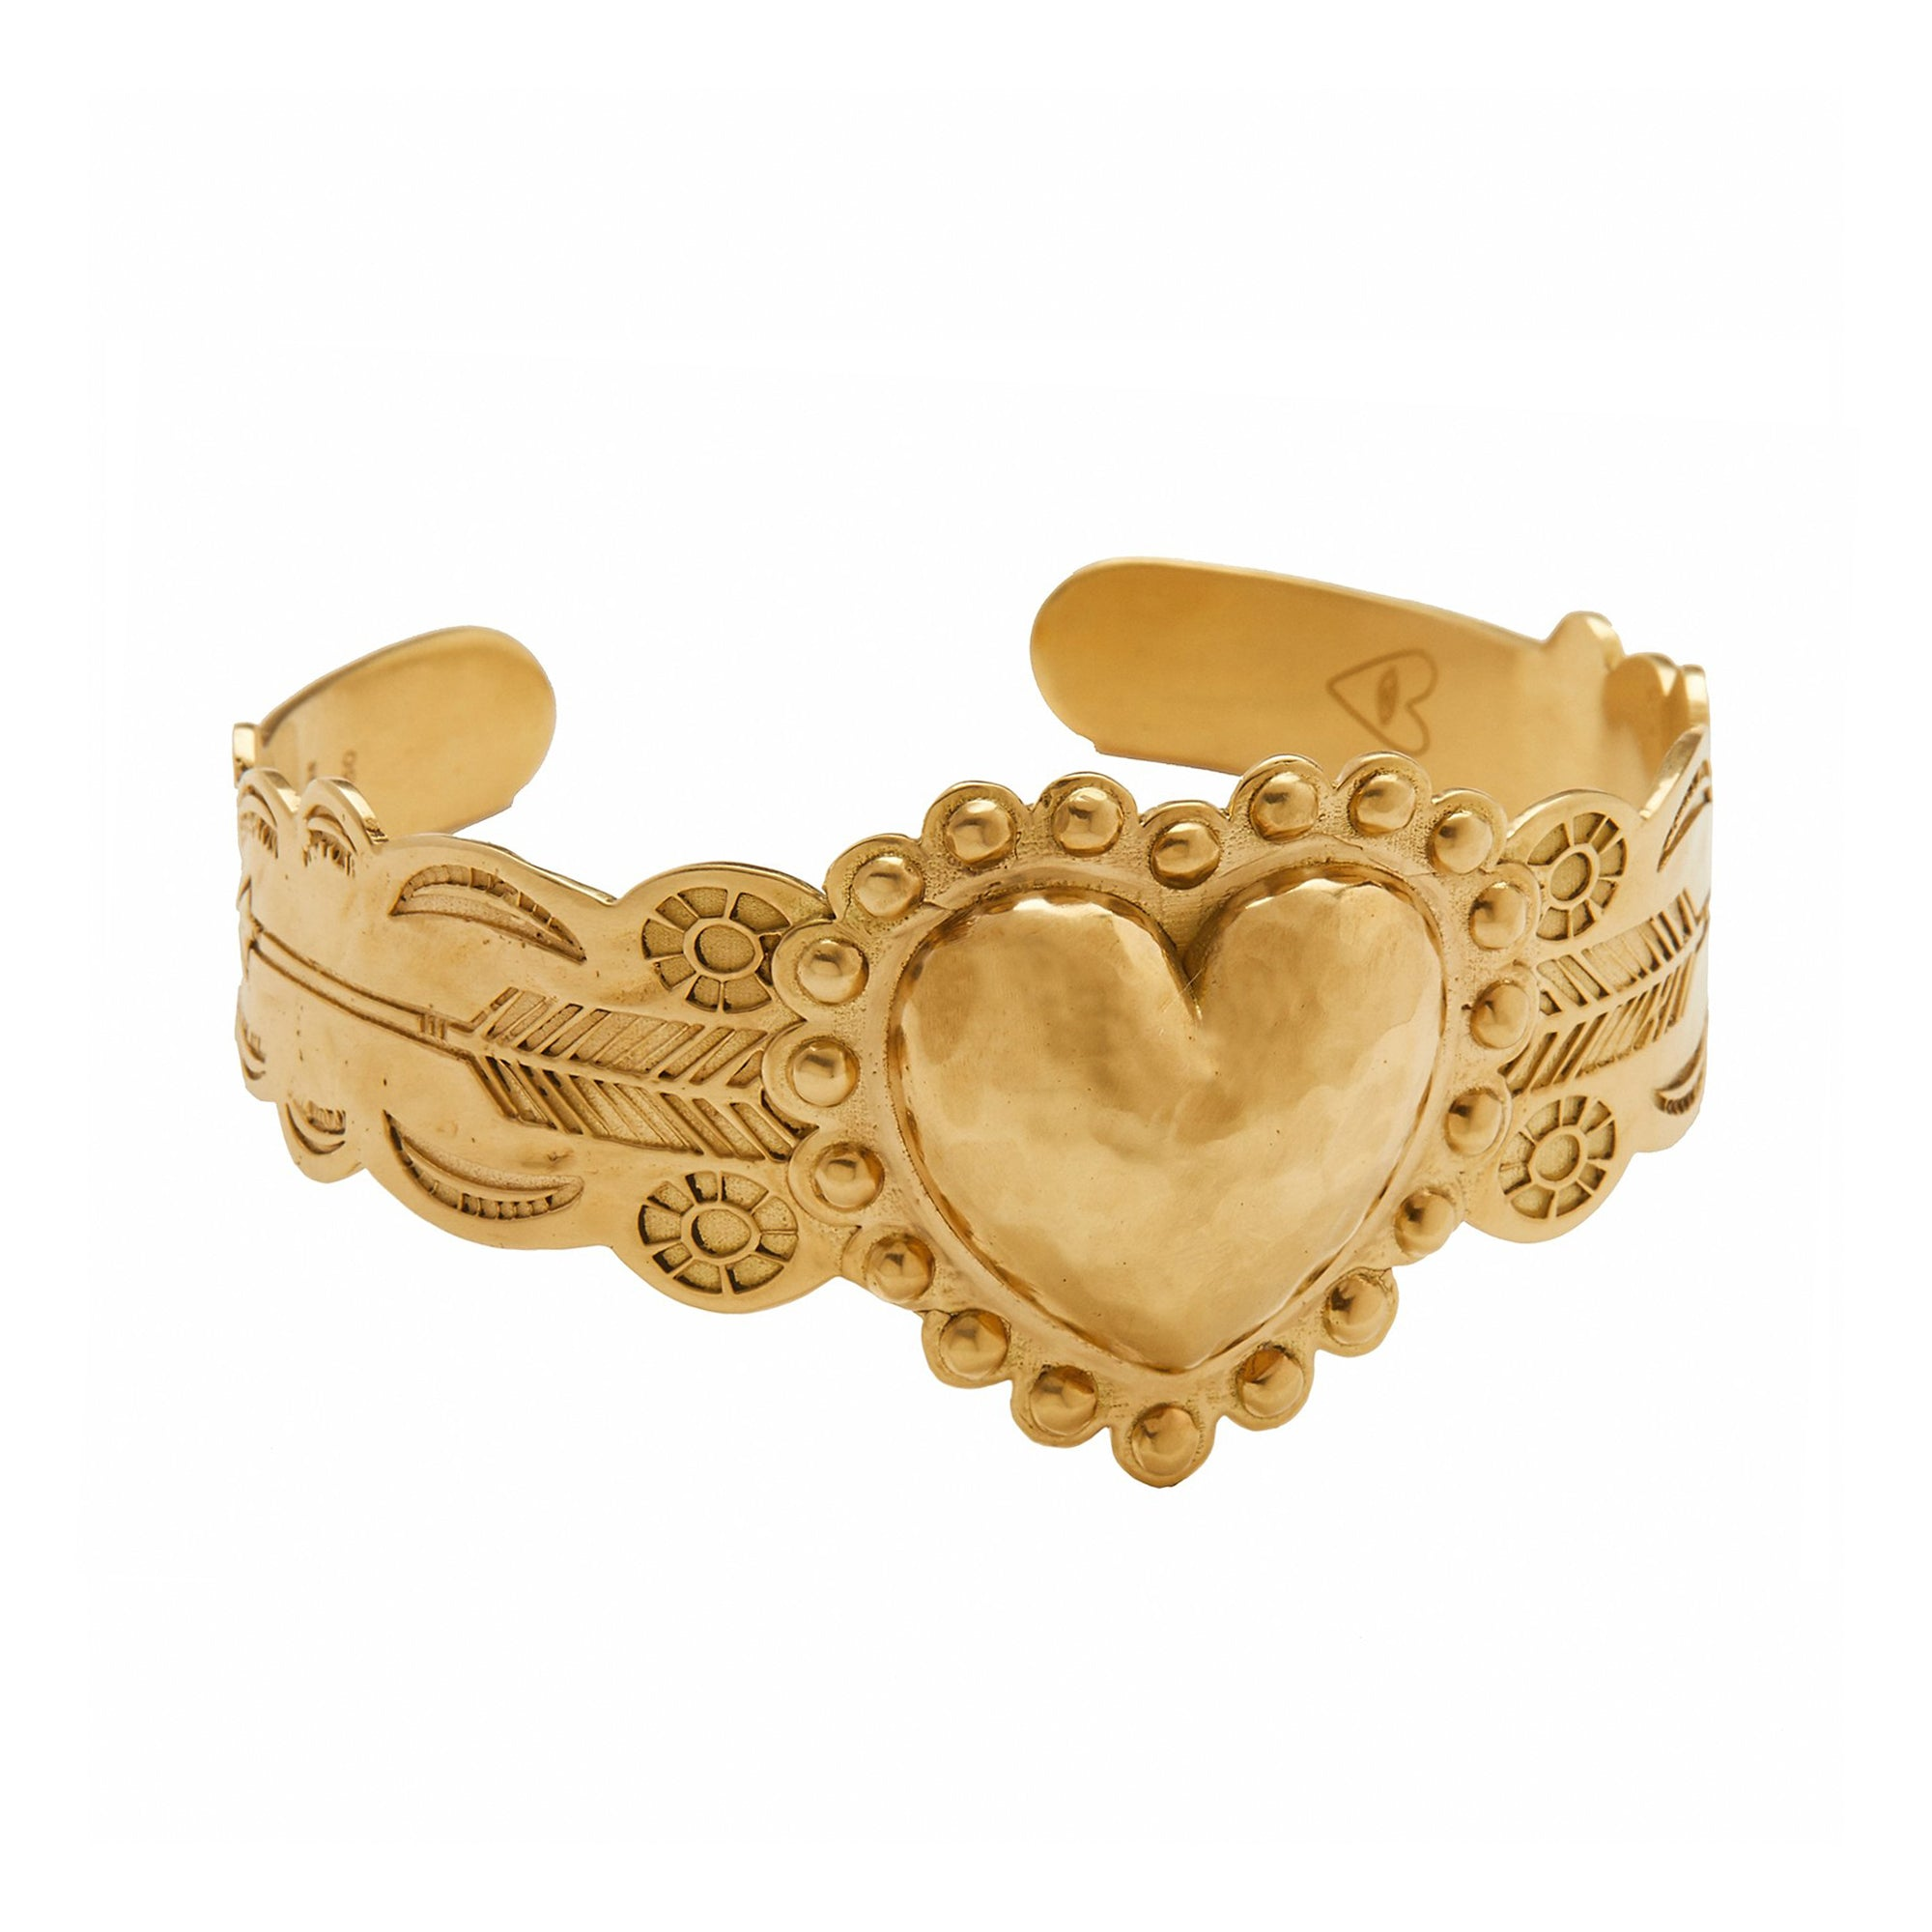 Heart Bracelet - Christina Alexiou - Bracelet | Broken English Jewelry